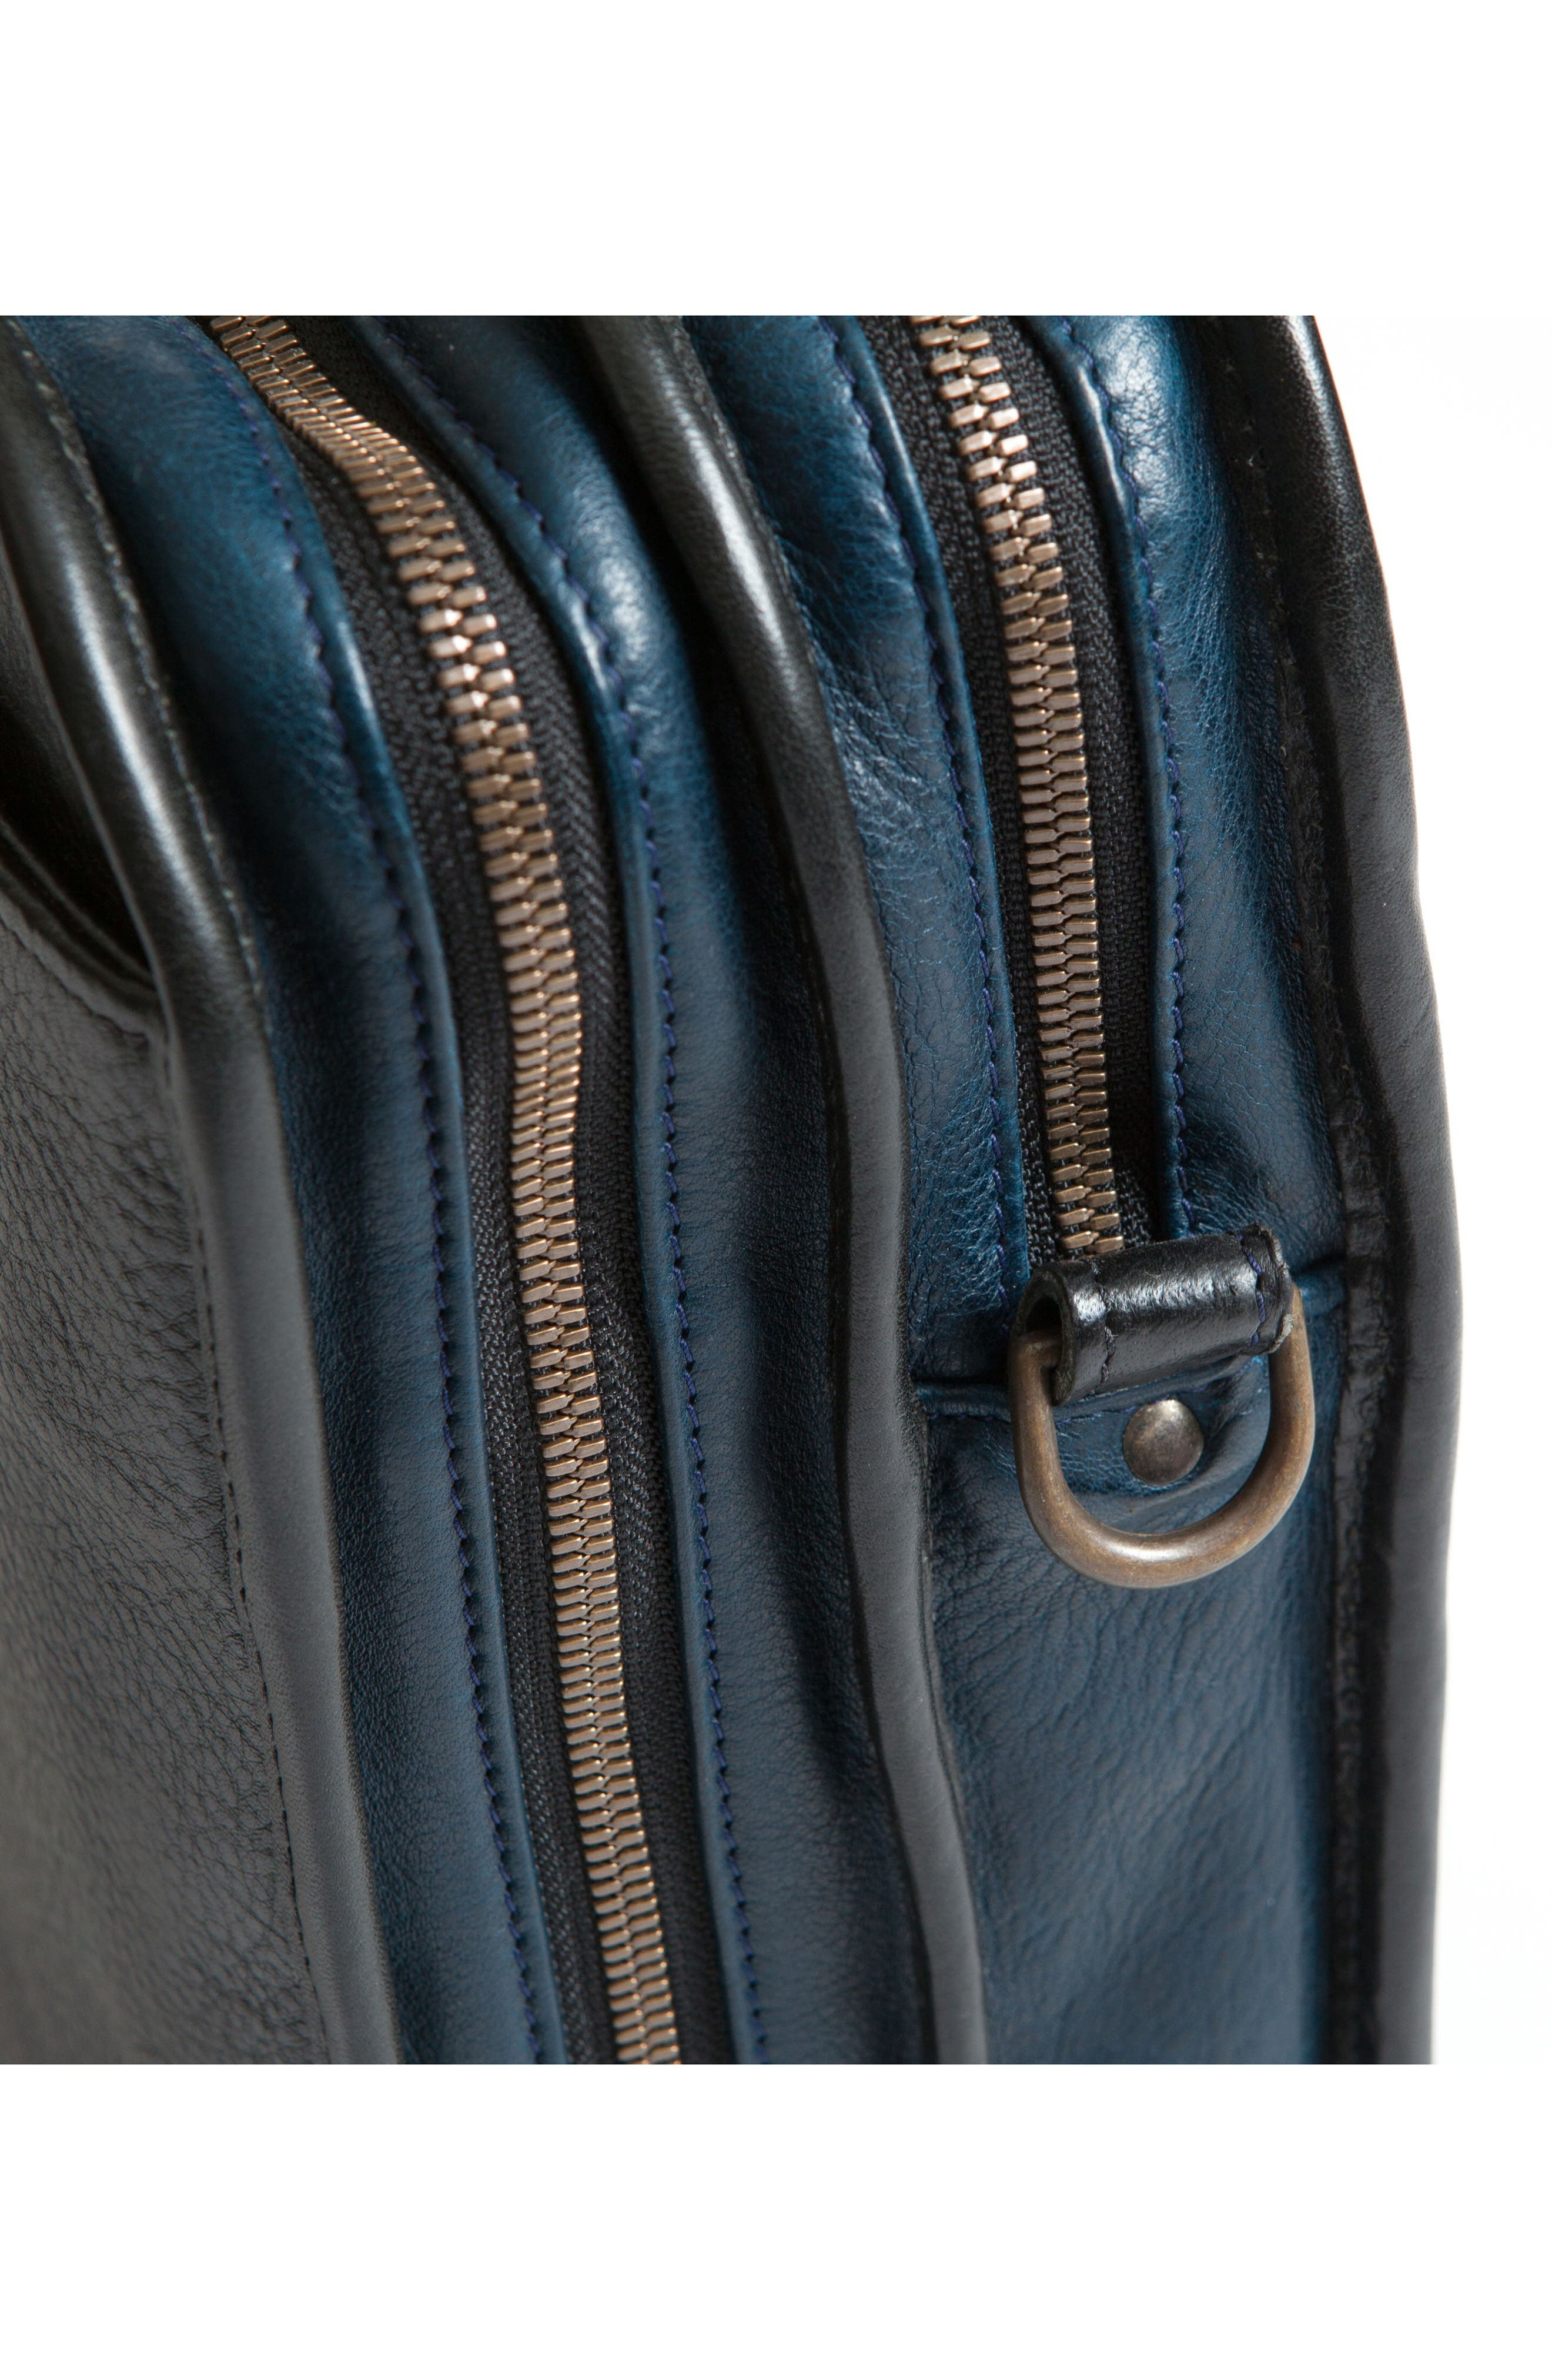 Miller Leather Briefcase,                             Alternate thumbnail 9, color,                             Titan Milled Navy And Gunmetal